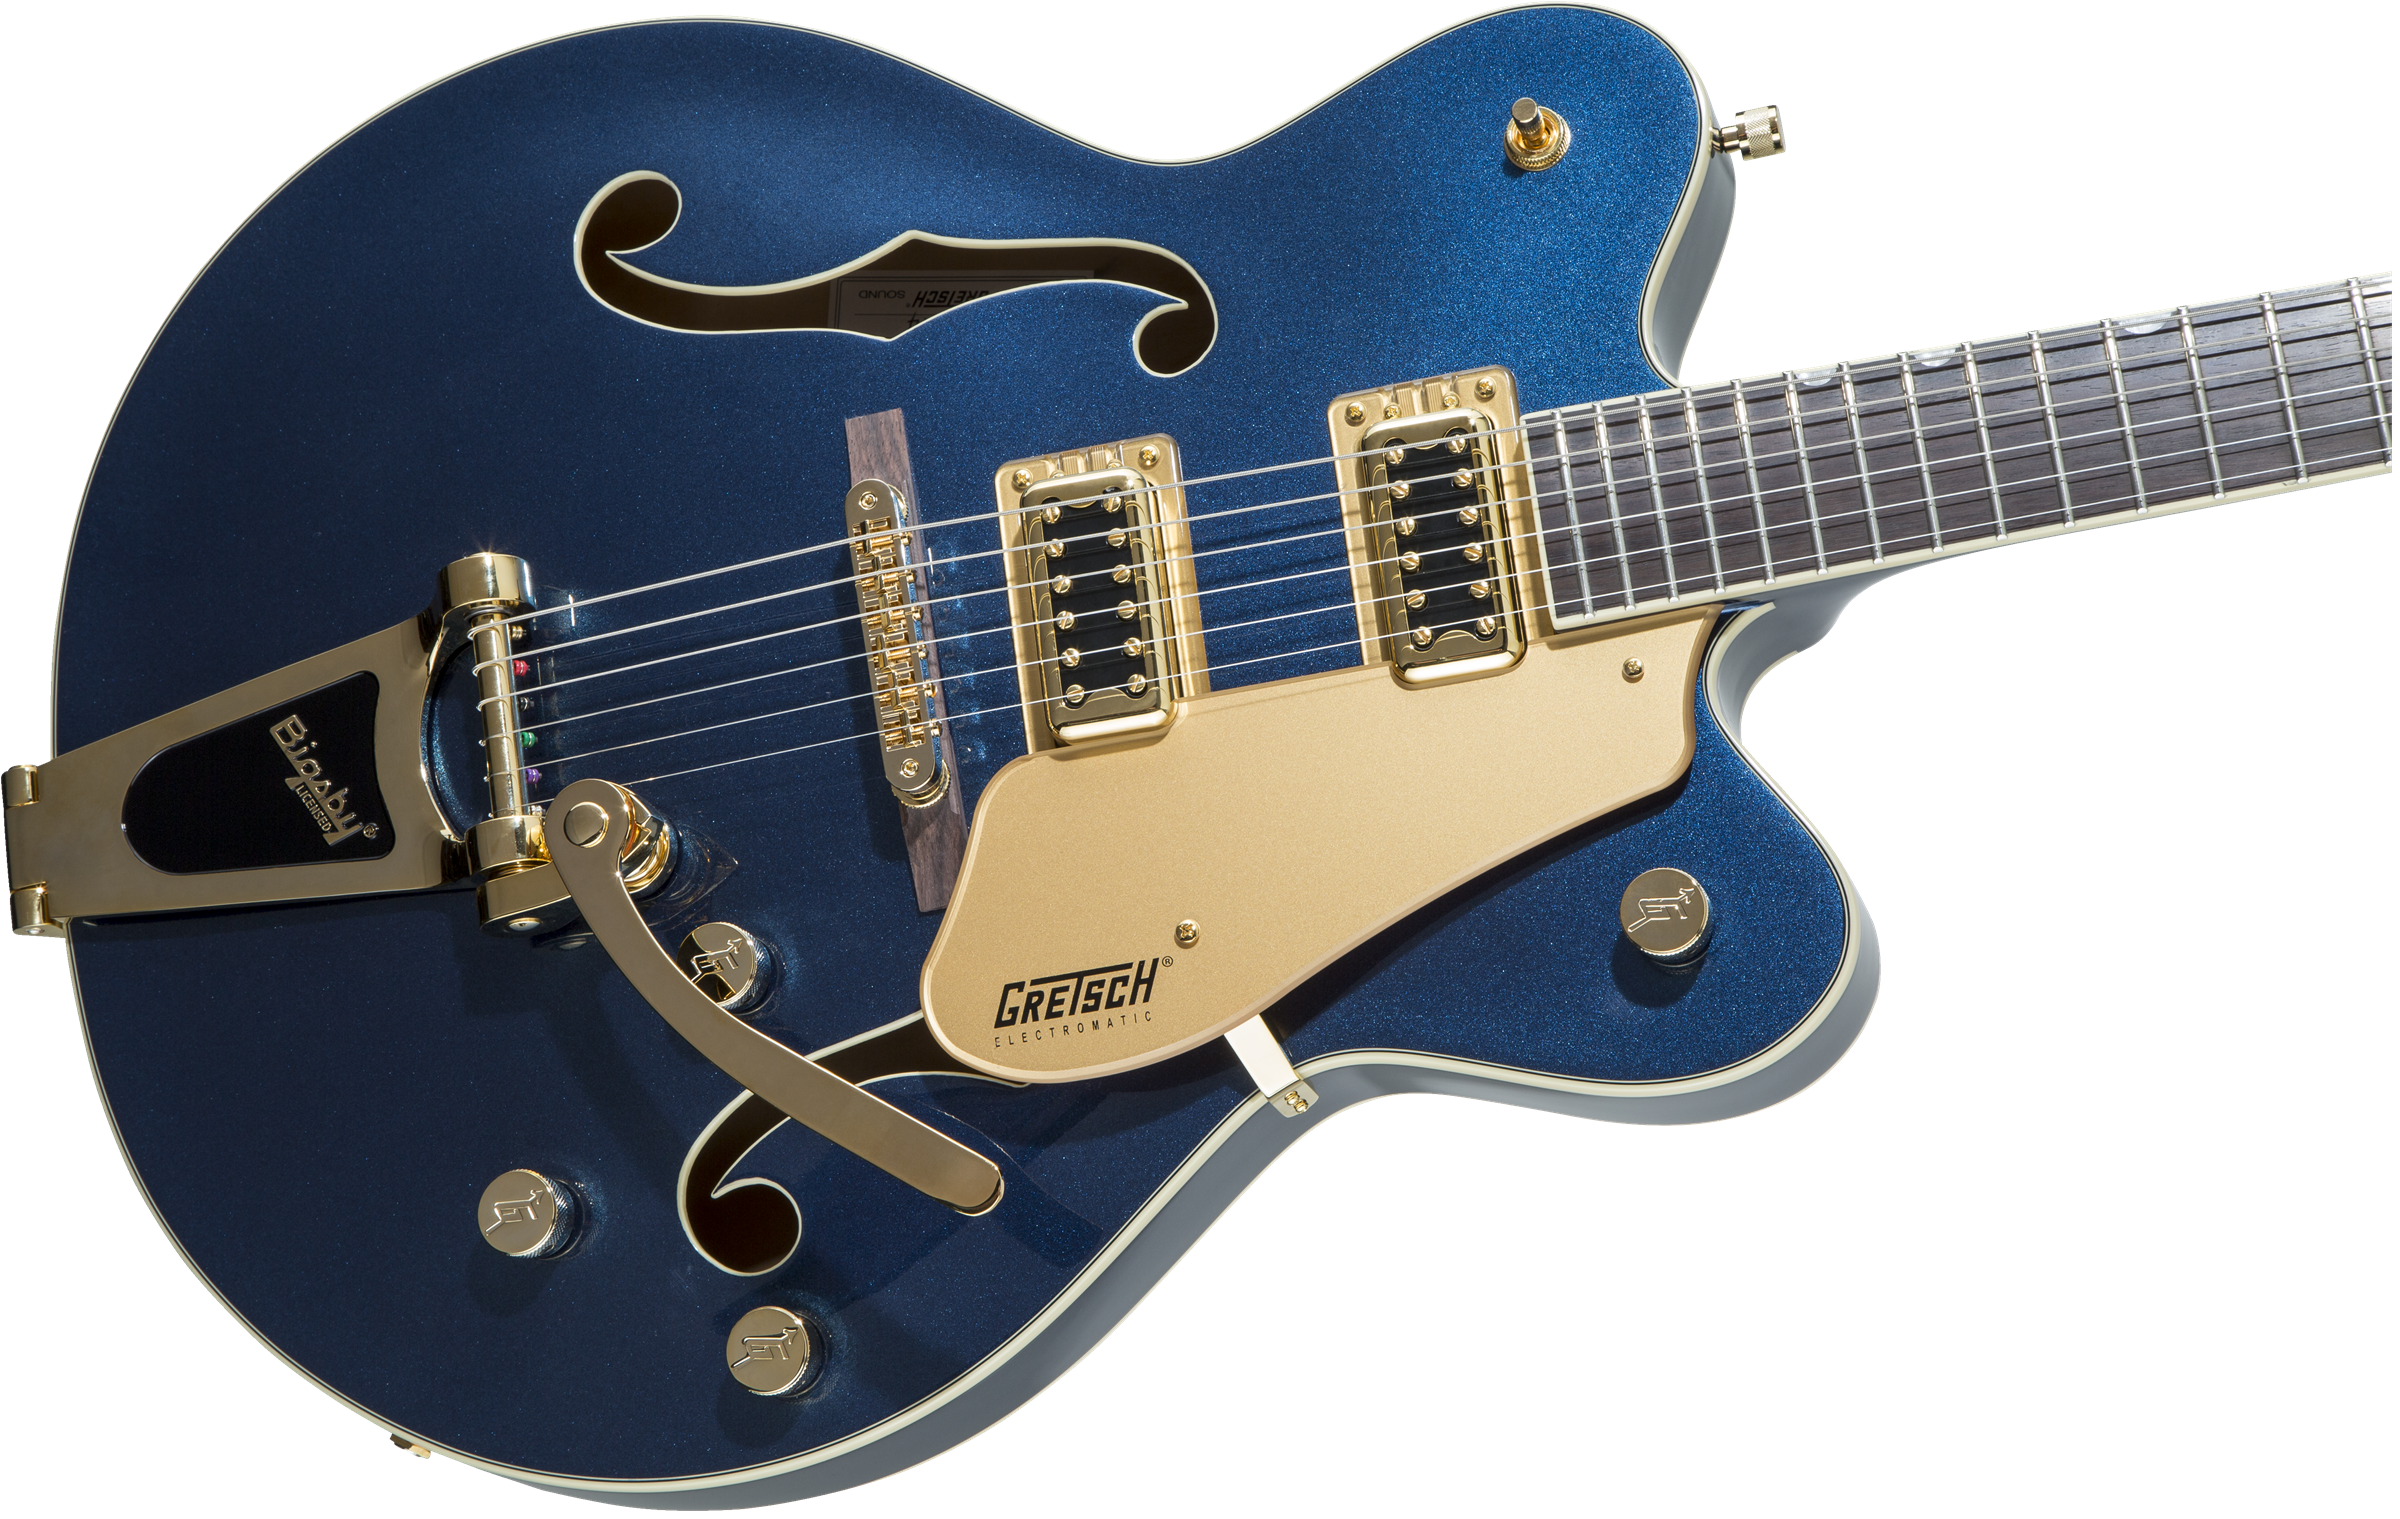 Gretsch G5422TG Limited Edition Electromatic Hollow Body Double-Cut with Bigsby - Midnight Sapphire